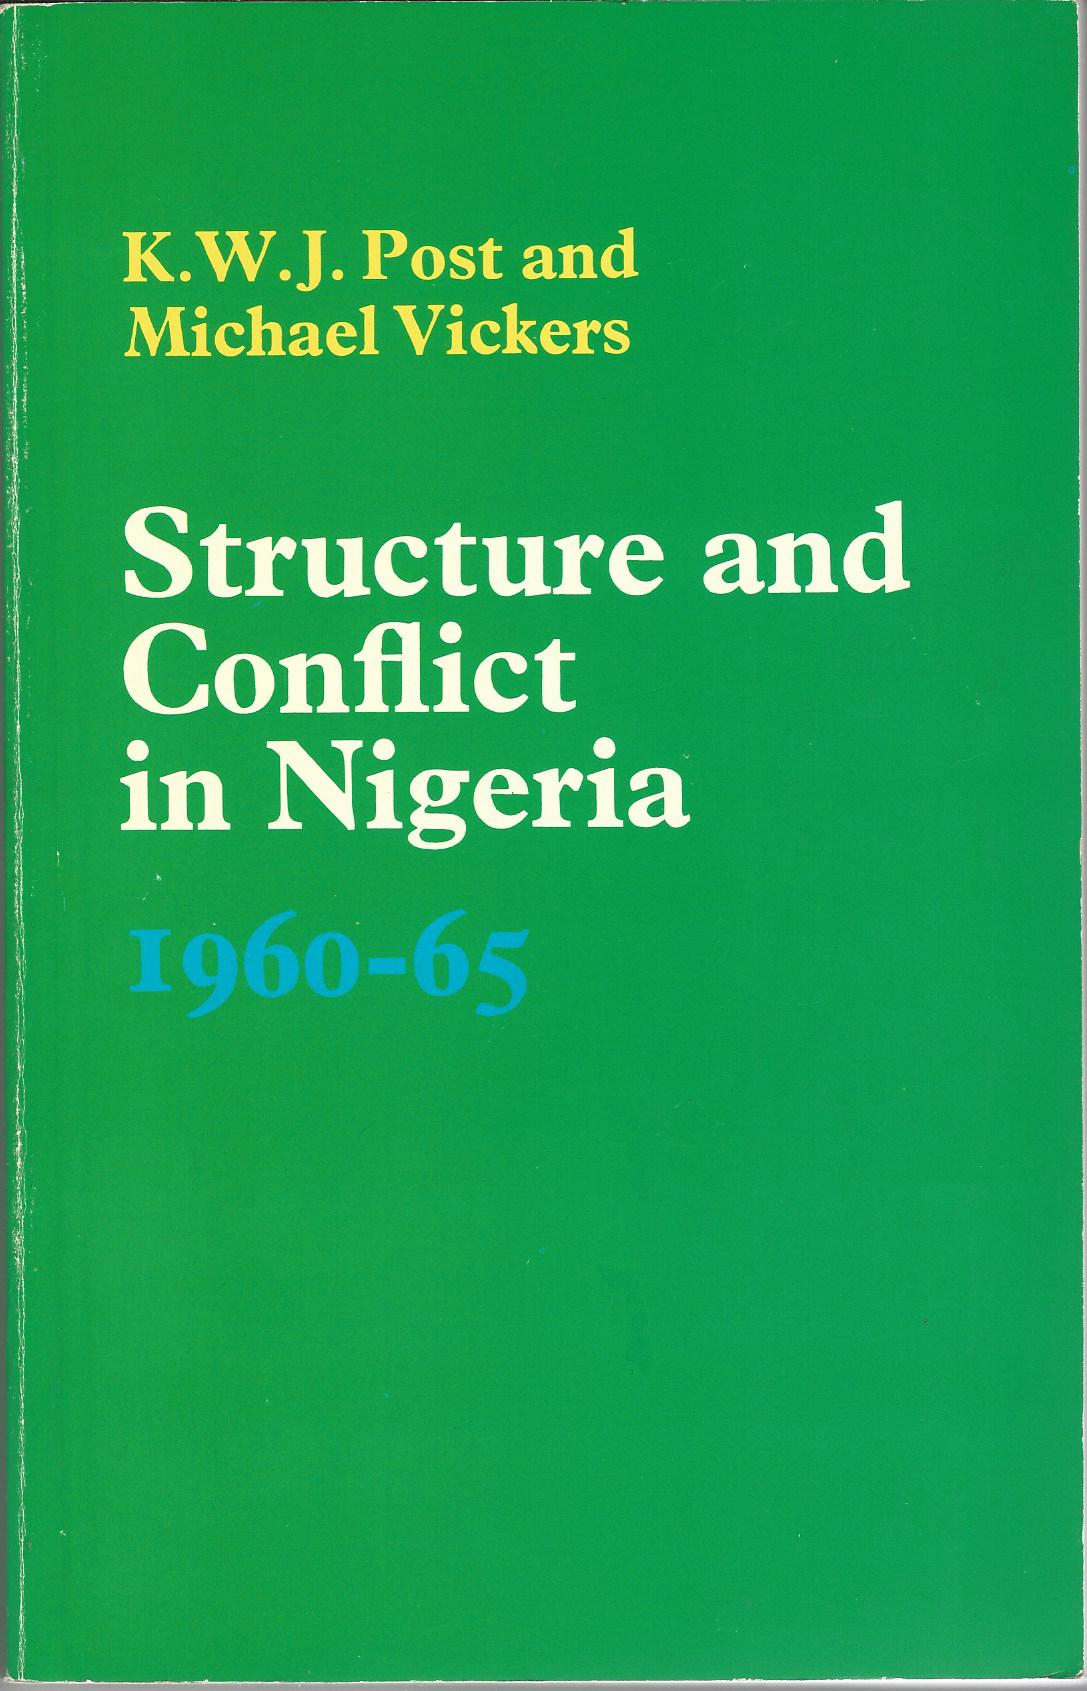 Image for Structure and conflict in Nigeria, 1960-1965.